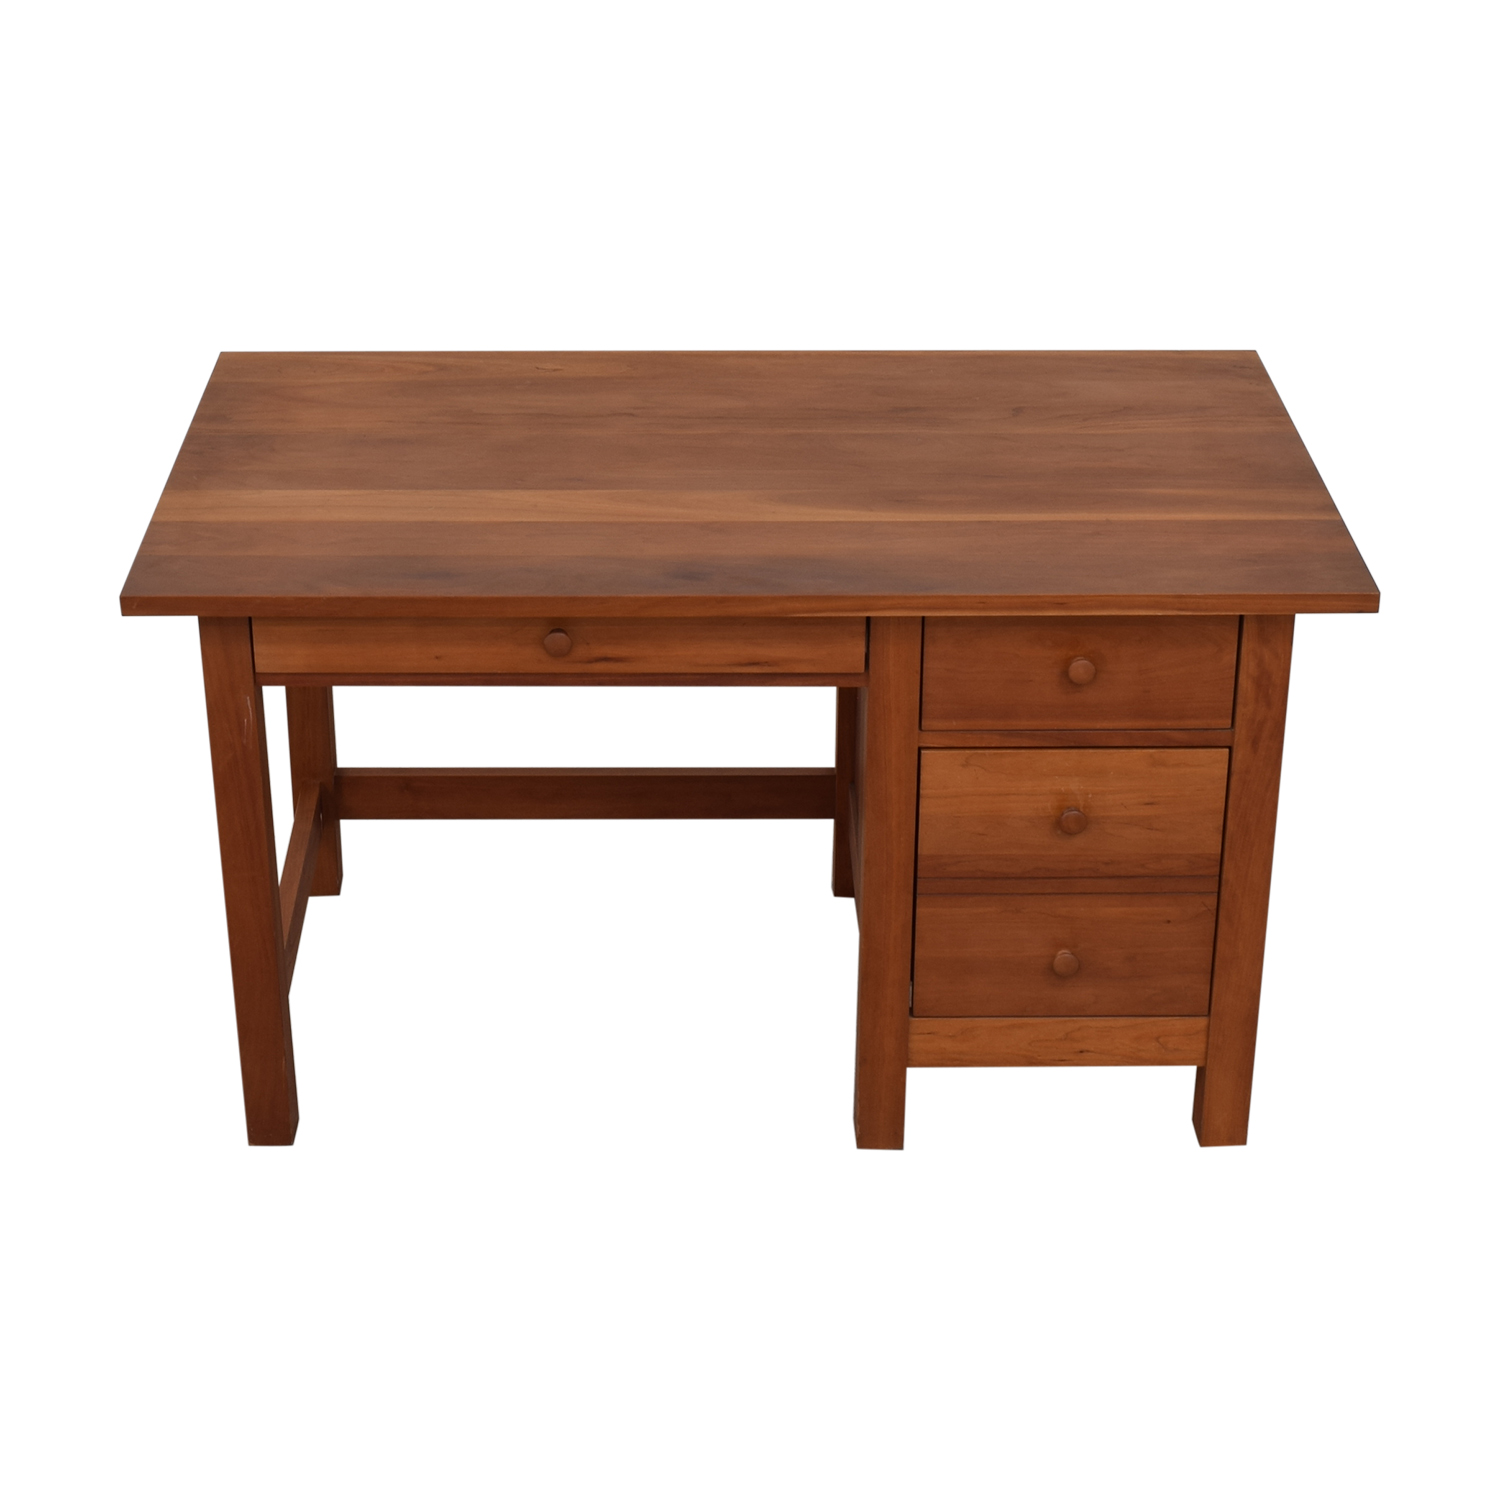 Vermont Furniture Designs Vermont Furniture Designs Shaker Two-Drawer with Keyboard Tray Desk used